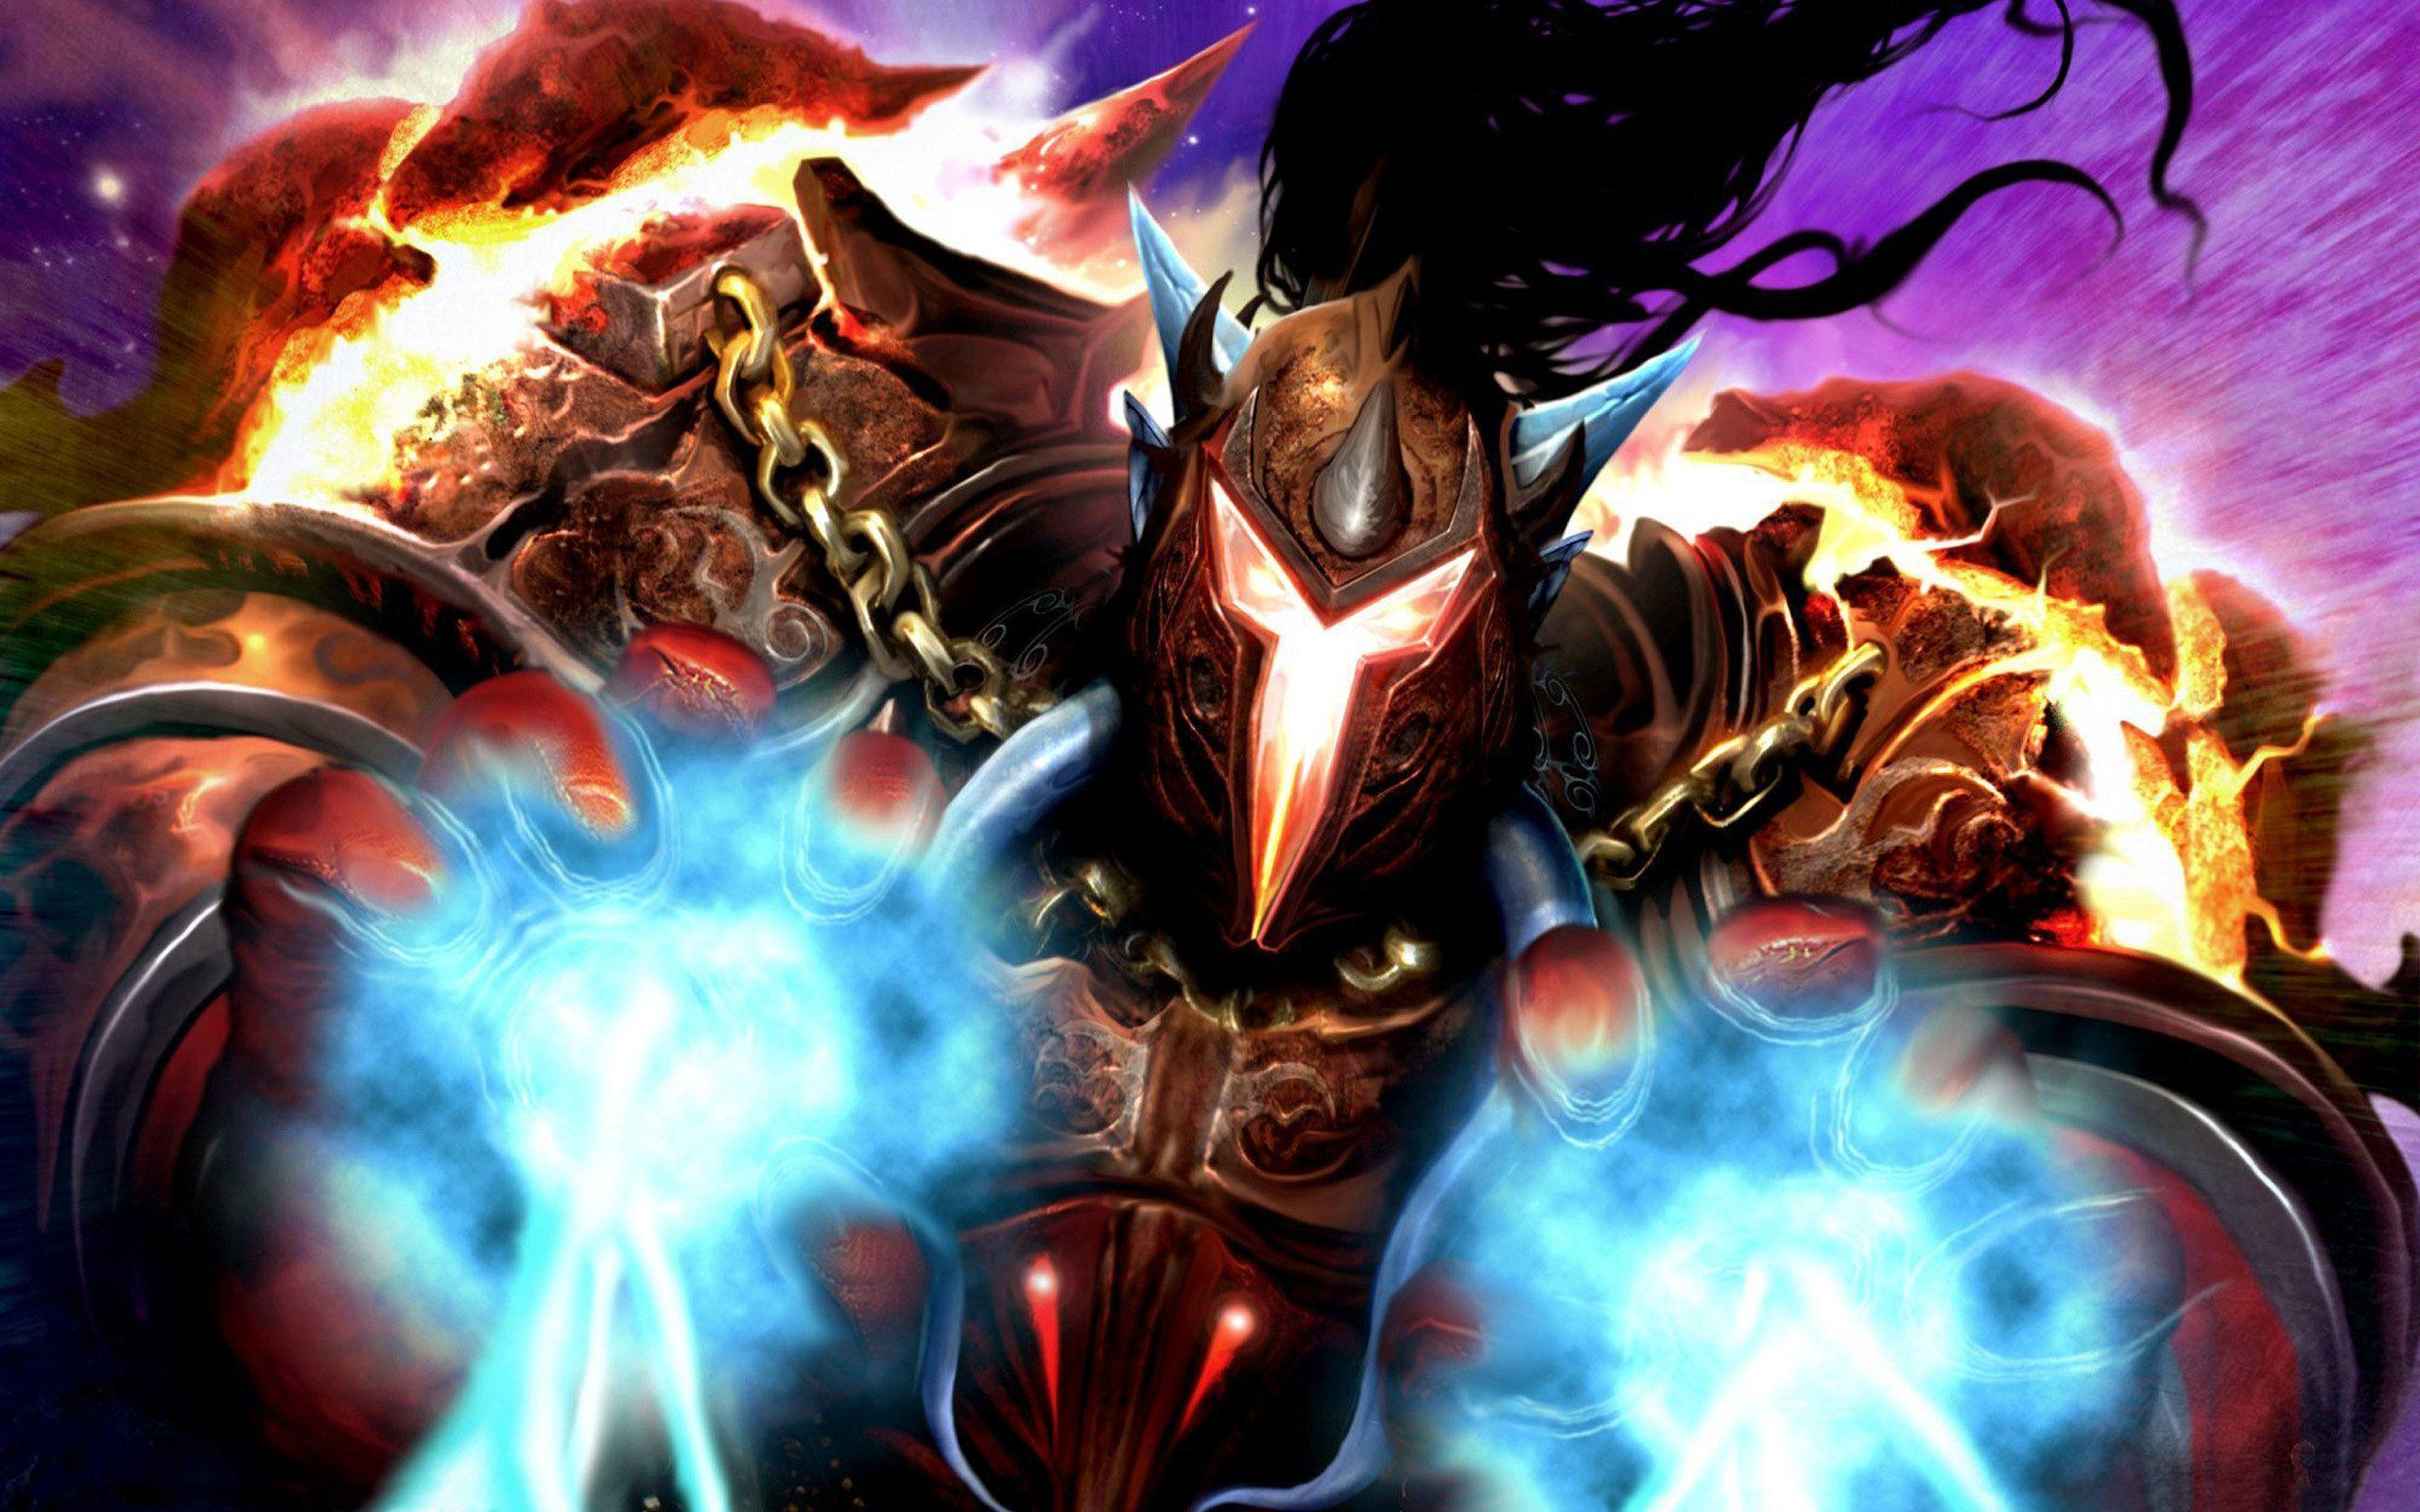 Digital Art.15 Wonderful World of Warcraft HD Wallpapers